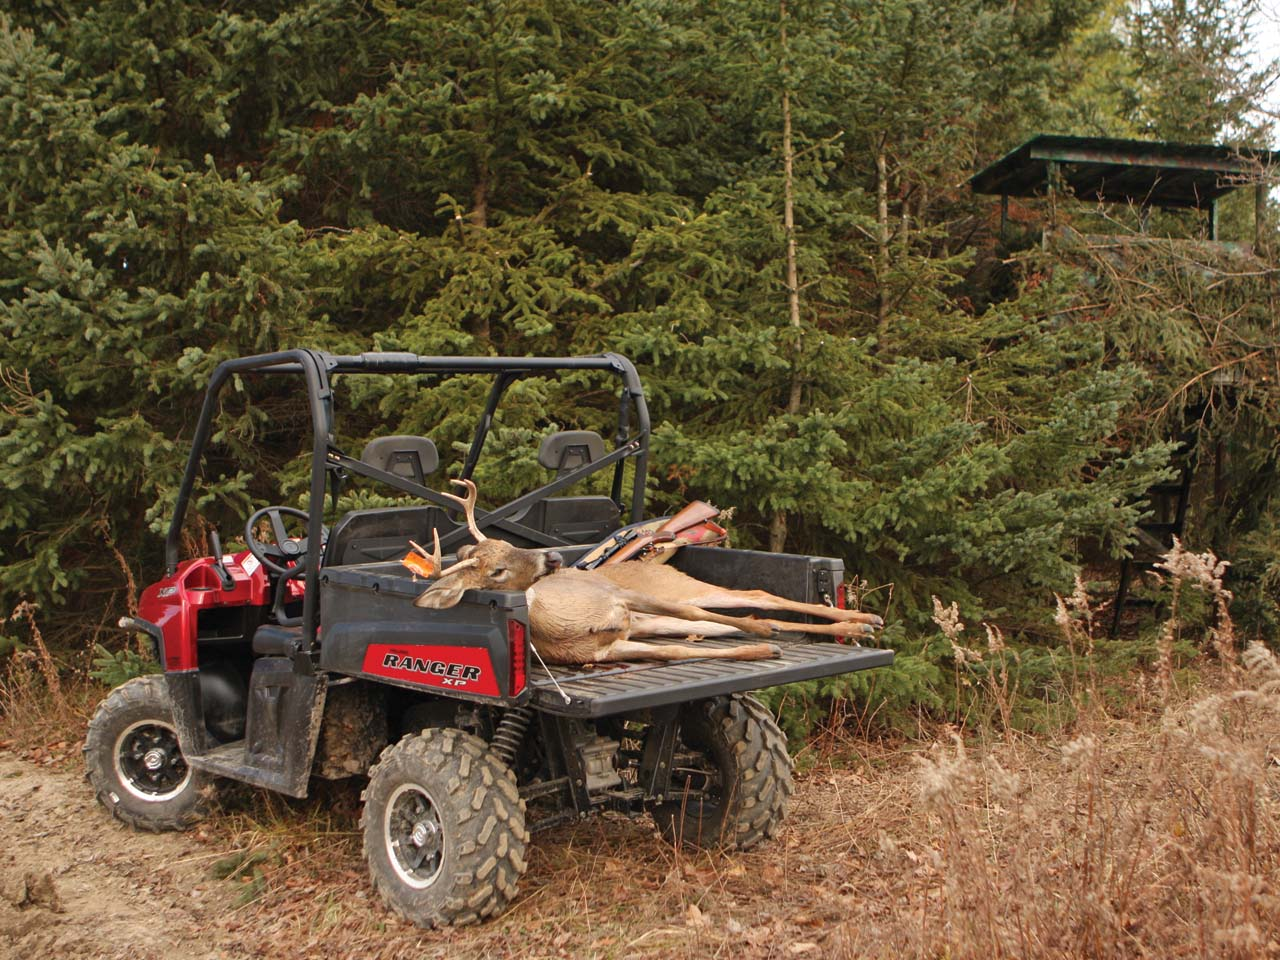 2011 Atv Illustrated S Hunting Guide And Tips For Side X